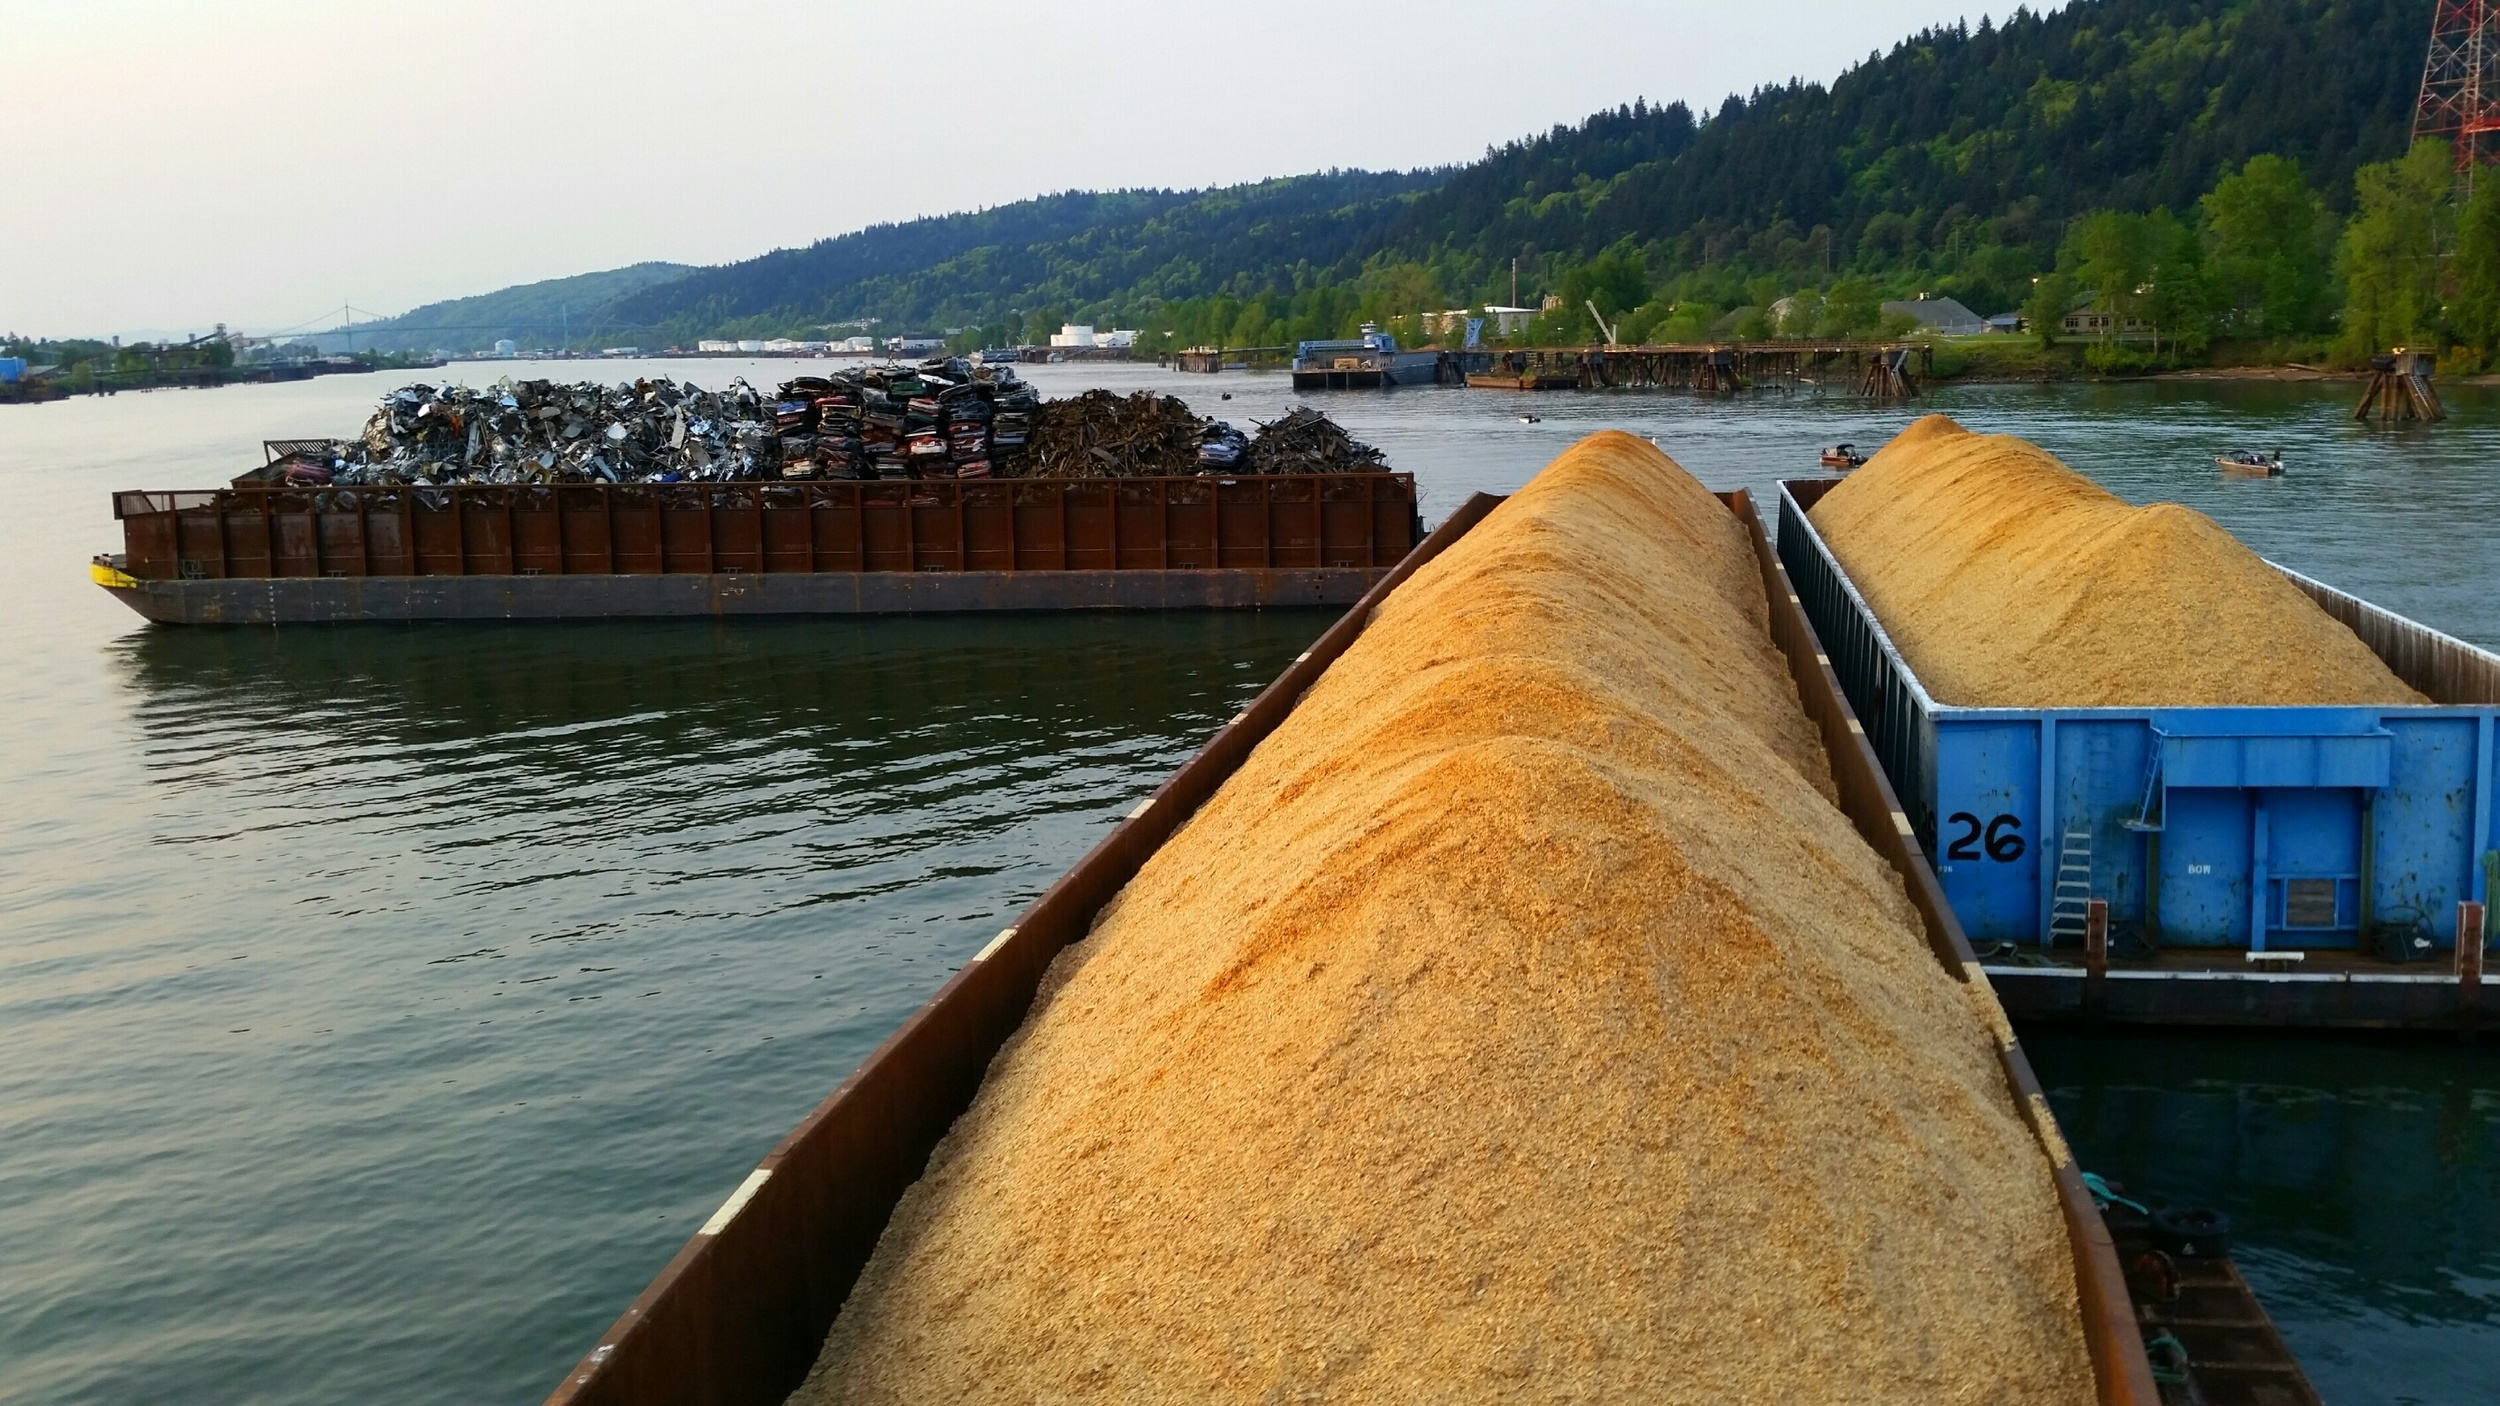 Five barges carrying 5,000 BDU's of wood chips is equivalent to over 100 rail cars or over 350 semi-trucks.